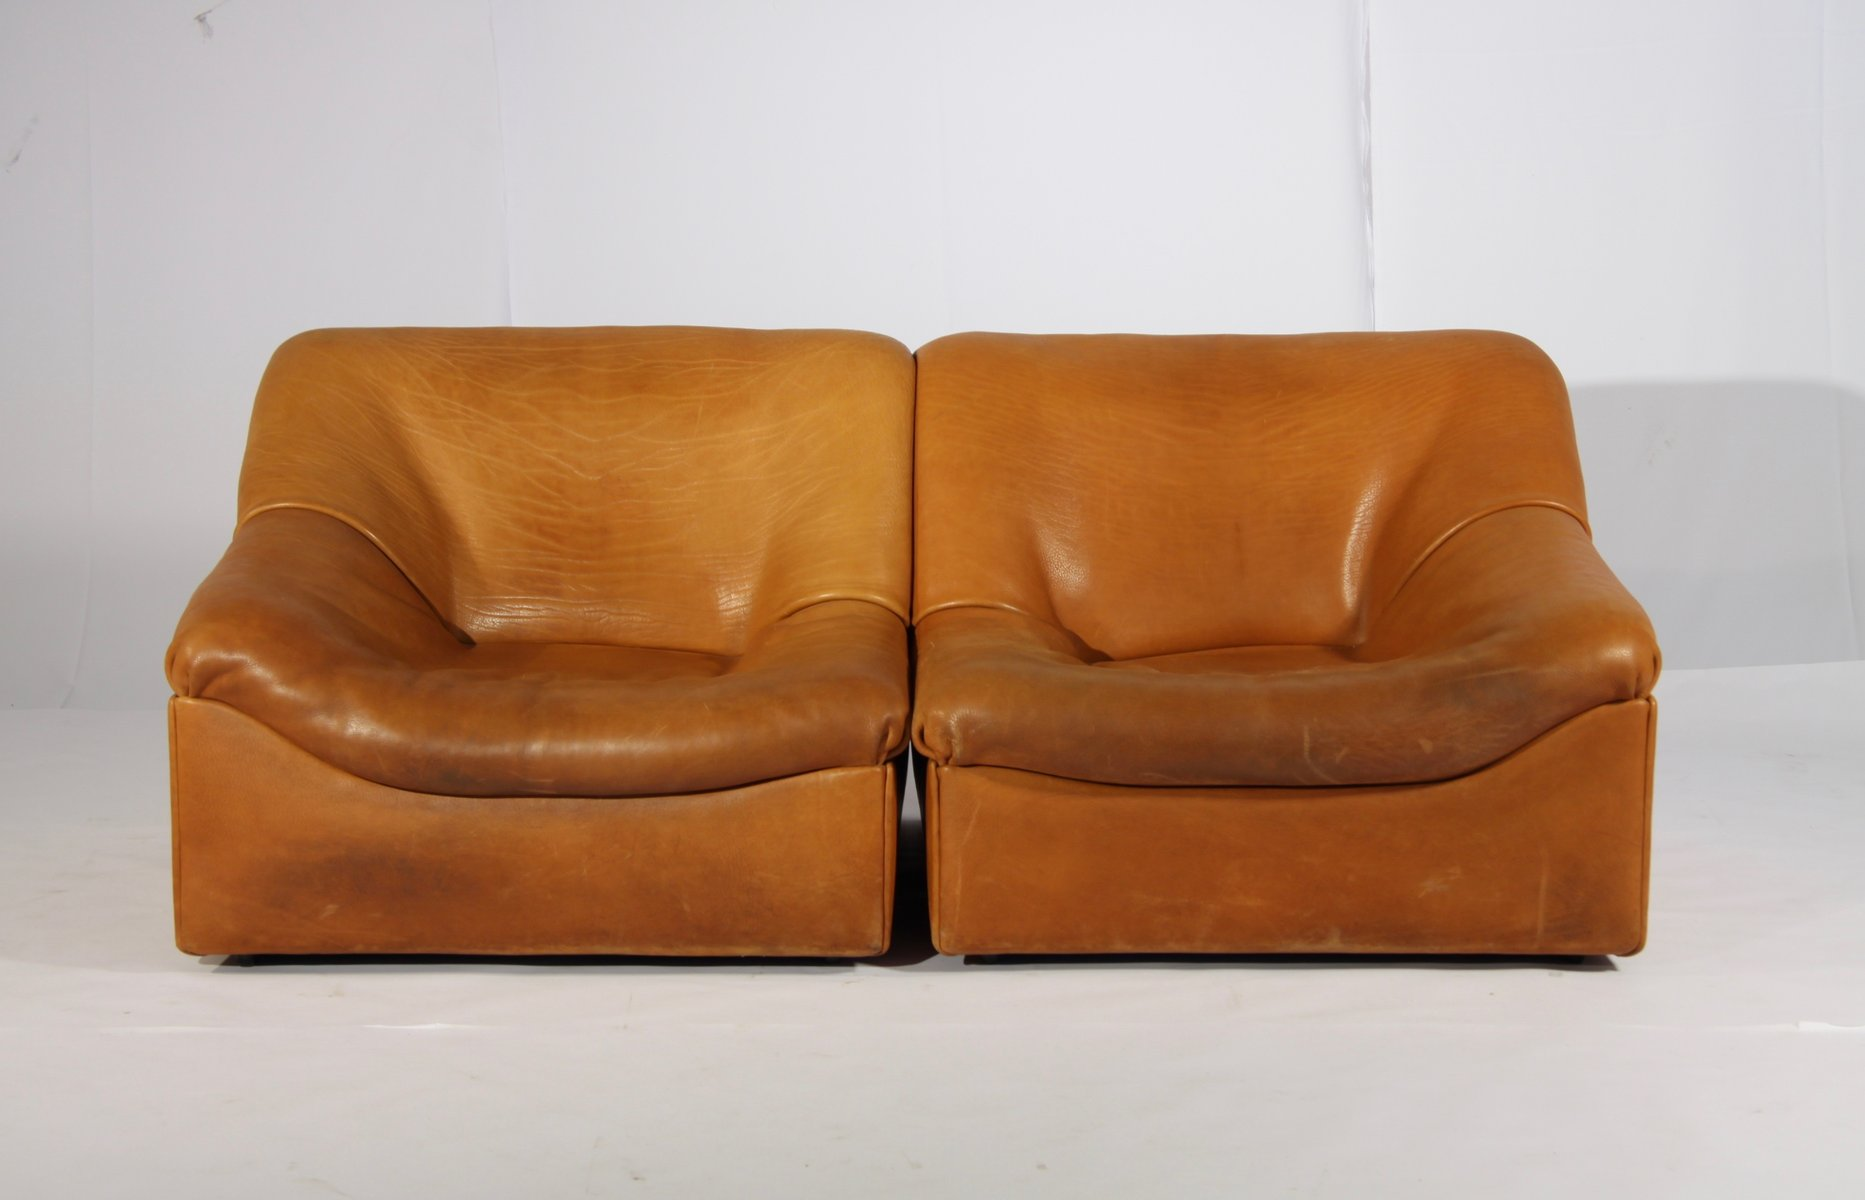 Ds 46 thick buffalo leather lounge chairs from de sede 1970s set of 2 for sale at pamono Sofa bar hamburg